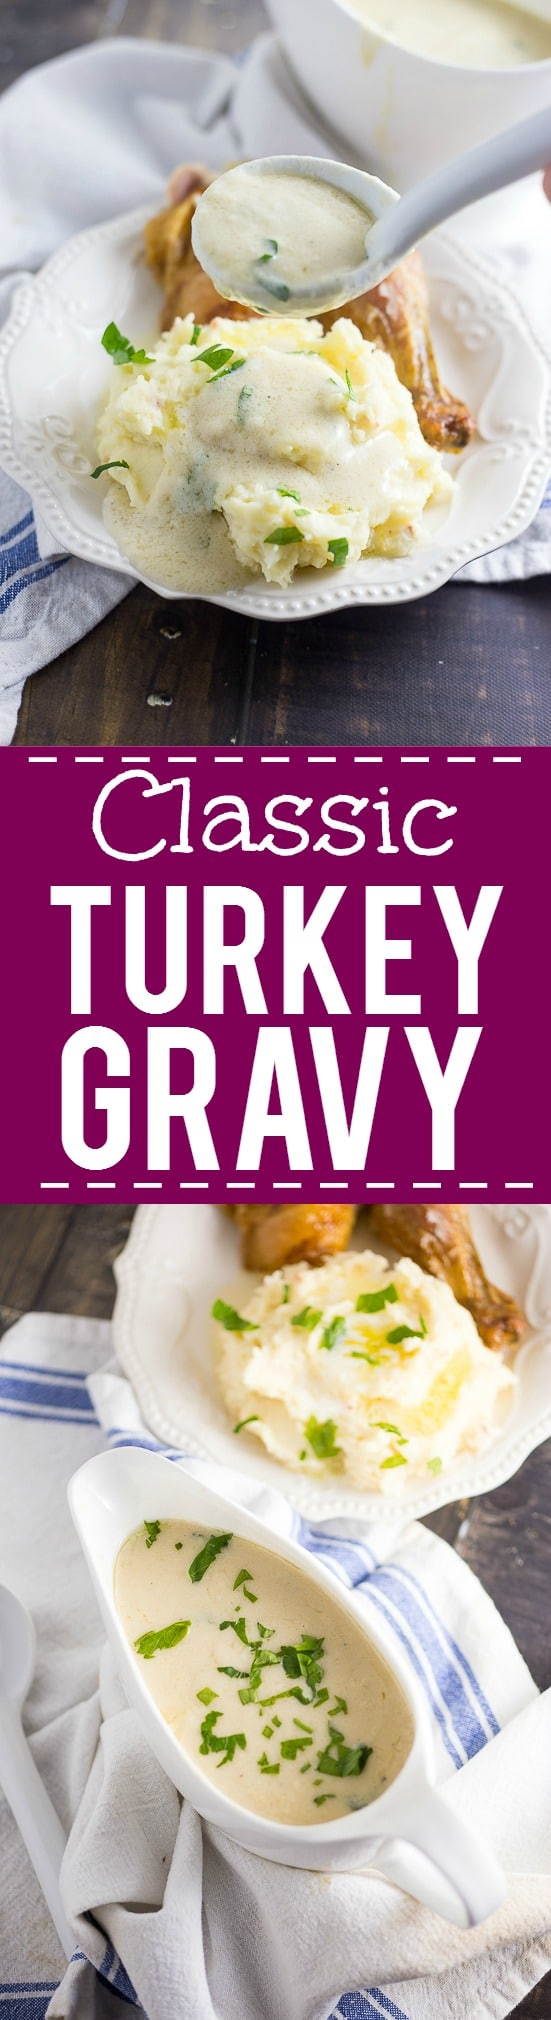 Easy Classic Turkey Gravy Recipe with a secret ingredient that makes it totally amazing. Perfect for Thanksgiving!A simple classic Turkey Gravy recipe that is guaranteed to please on your Thanksgiving table. The perfect turkey gravy recipe to complement your gorgeous Thanksgiving turkey.